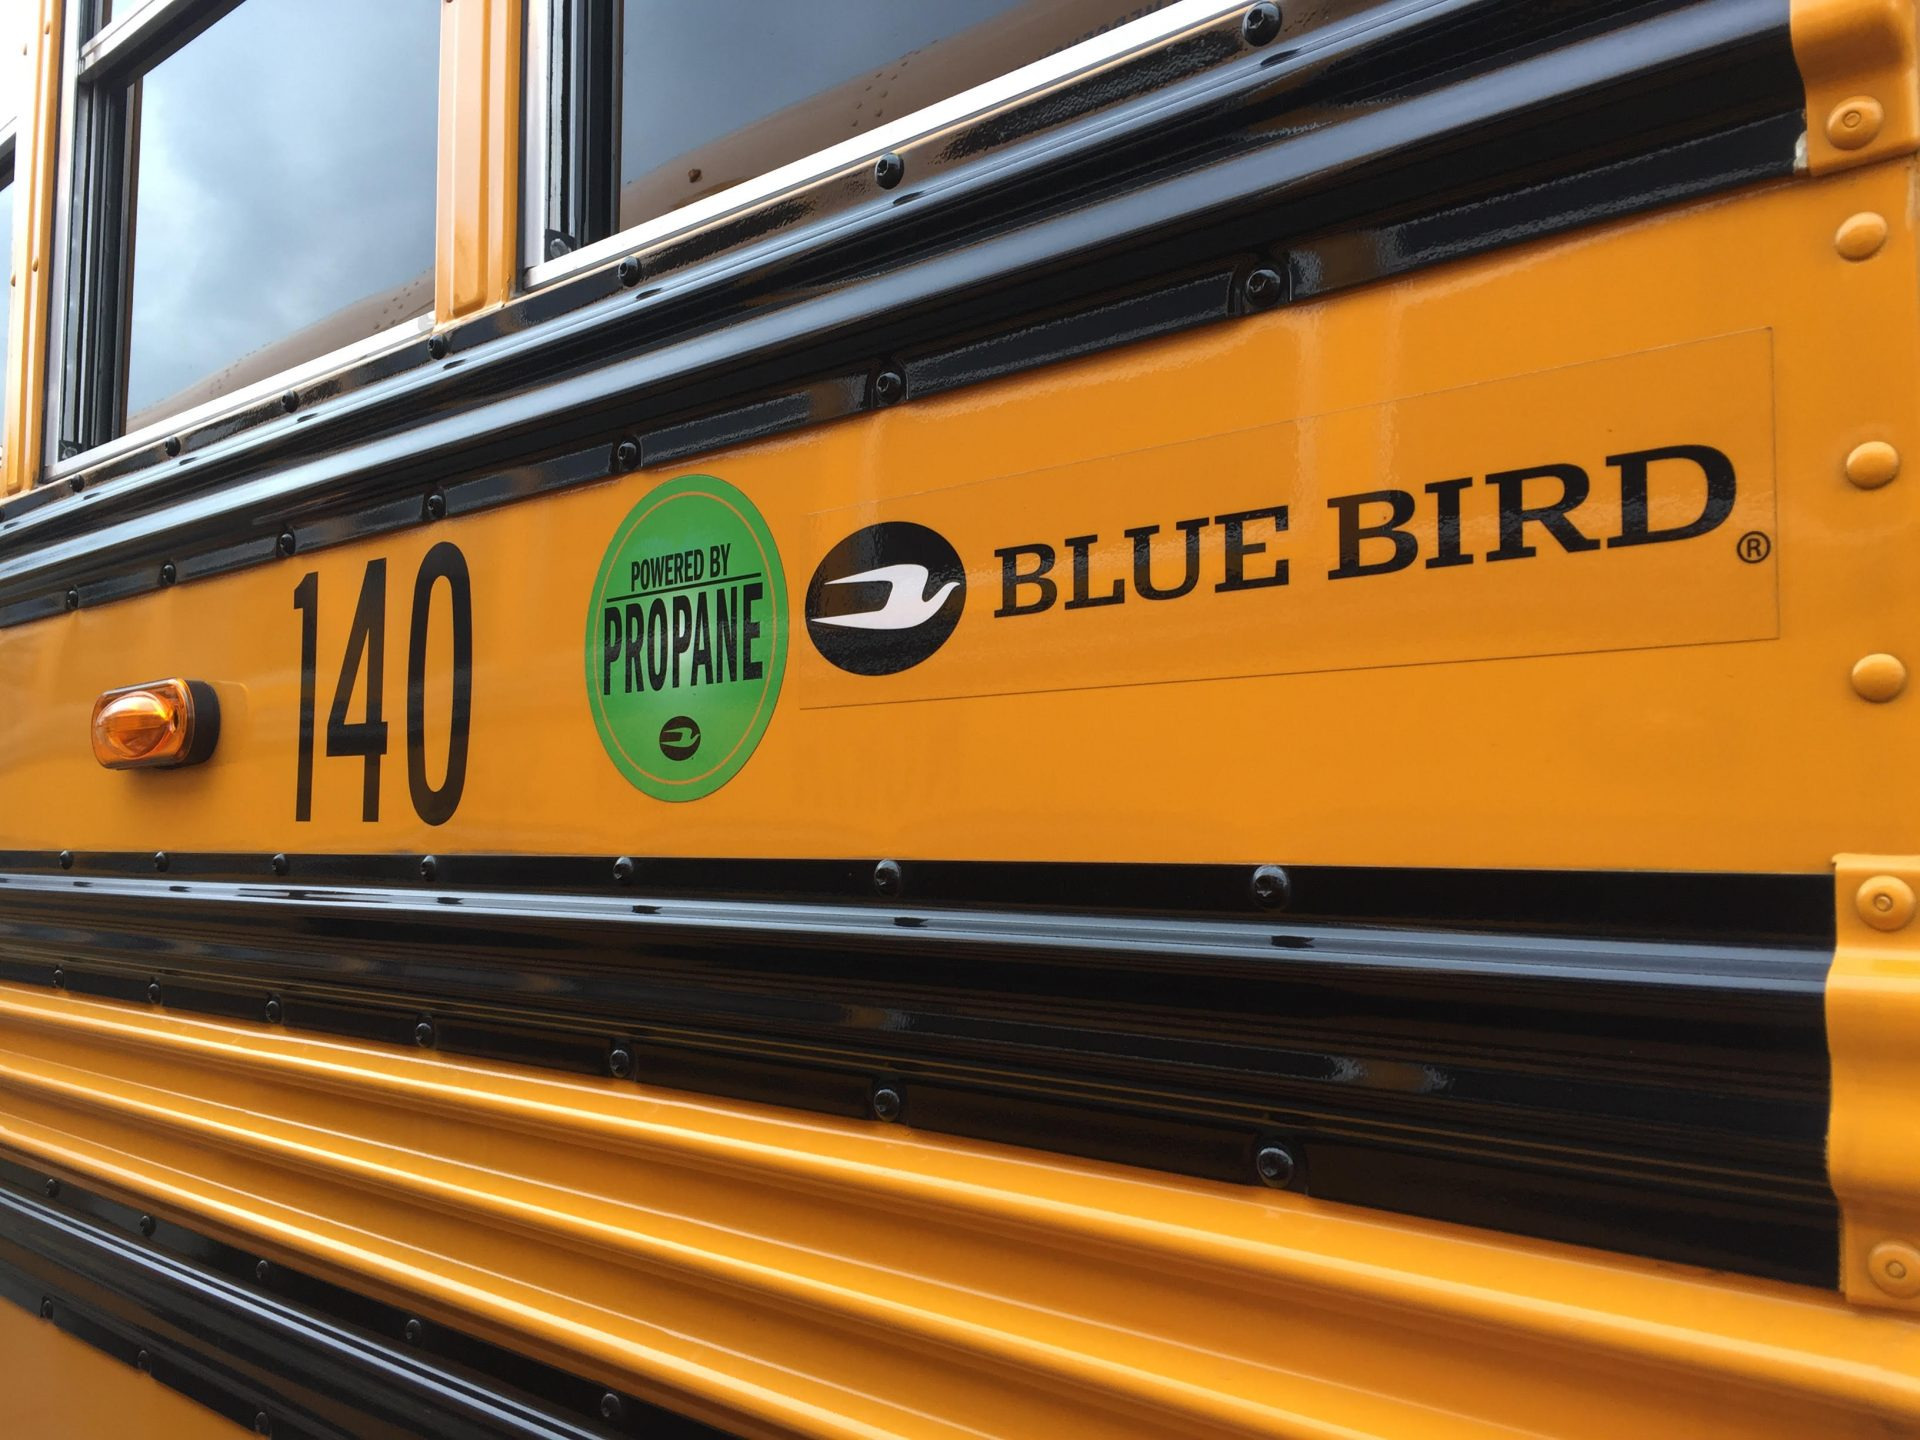 One of North Penn School District's new propane buses.